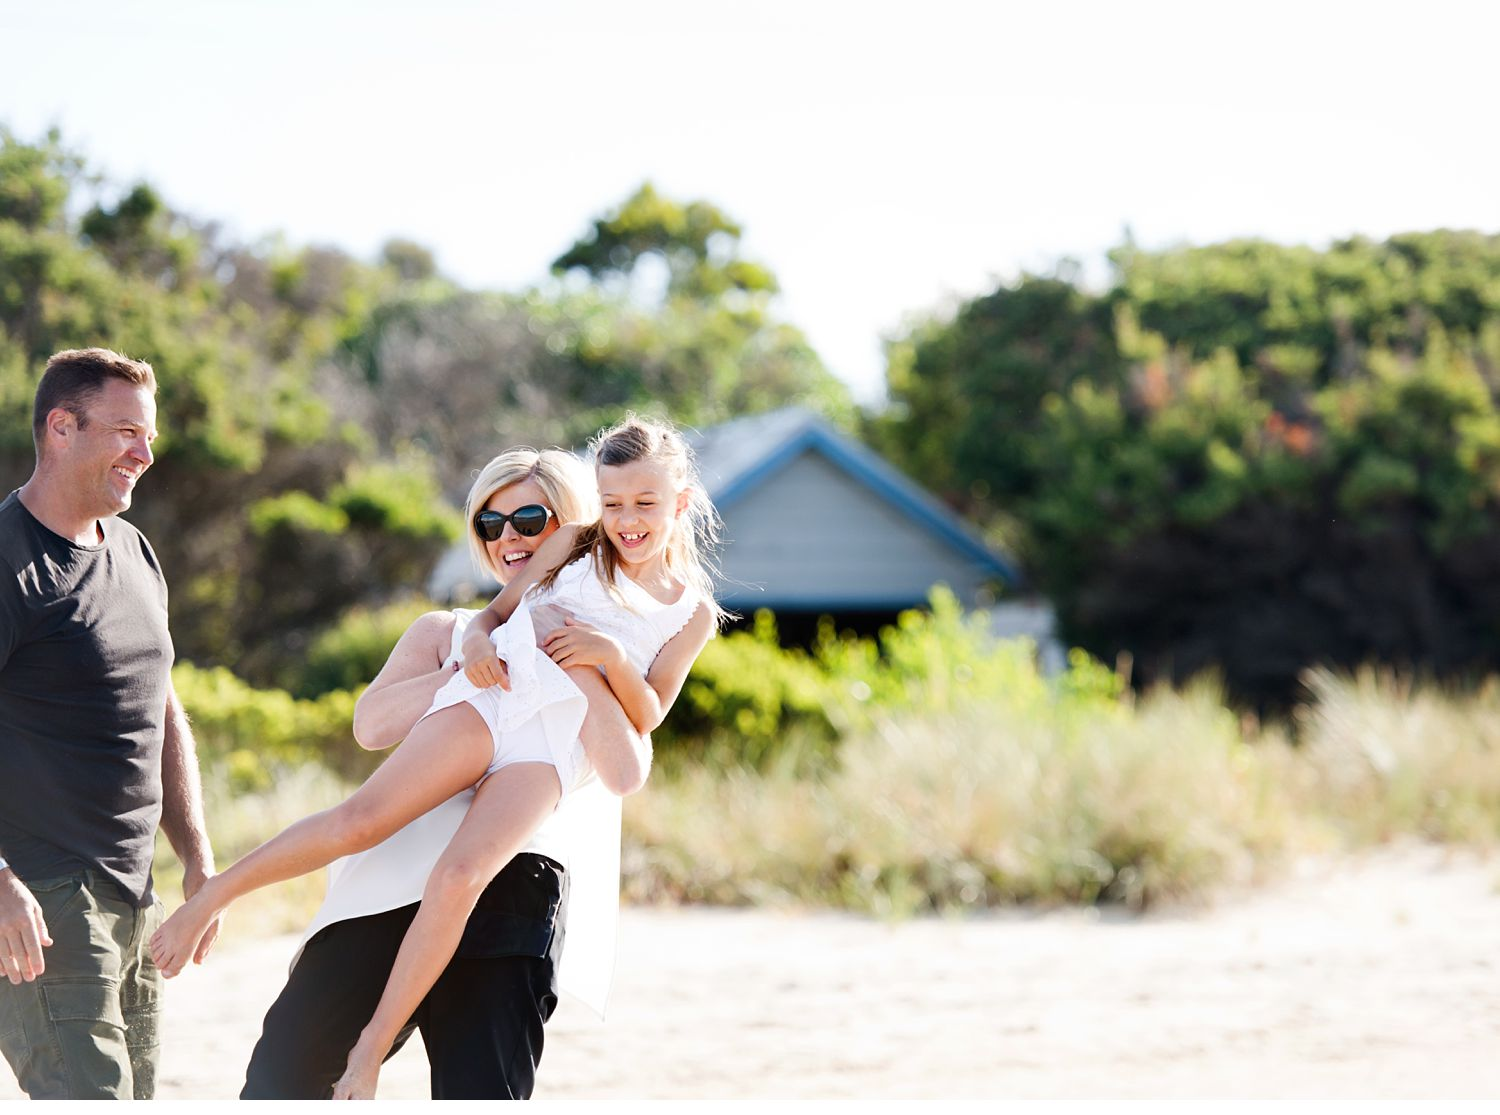 bec-stewart-photography-extended-family-photography-session-melbourne-australia-city-of-casey-15.jpg